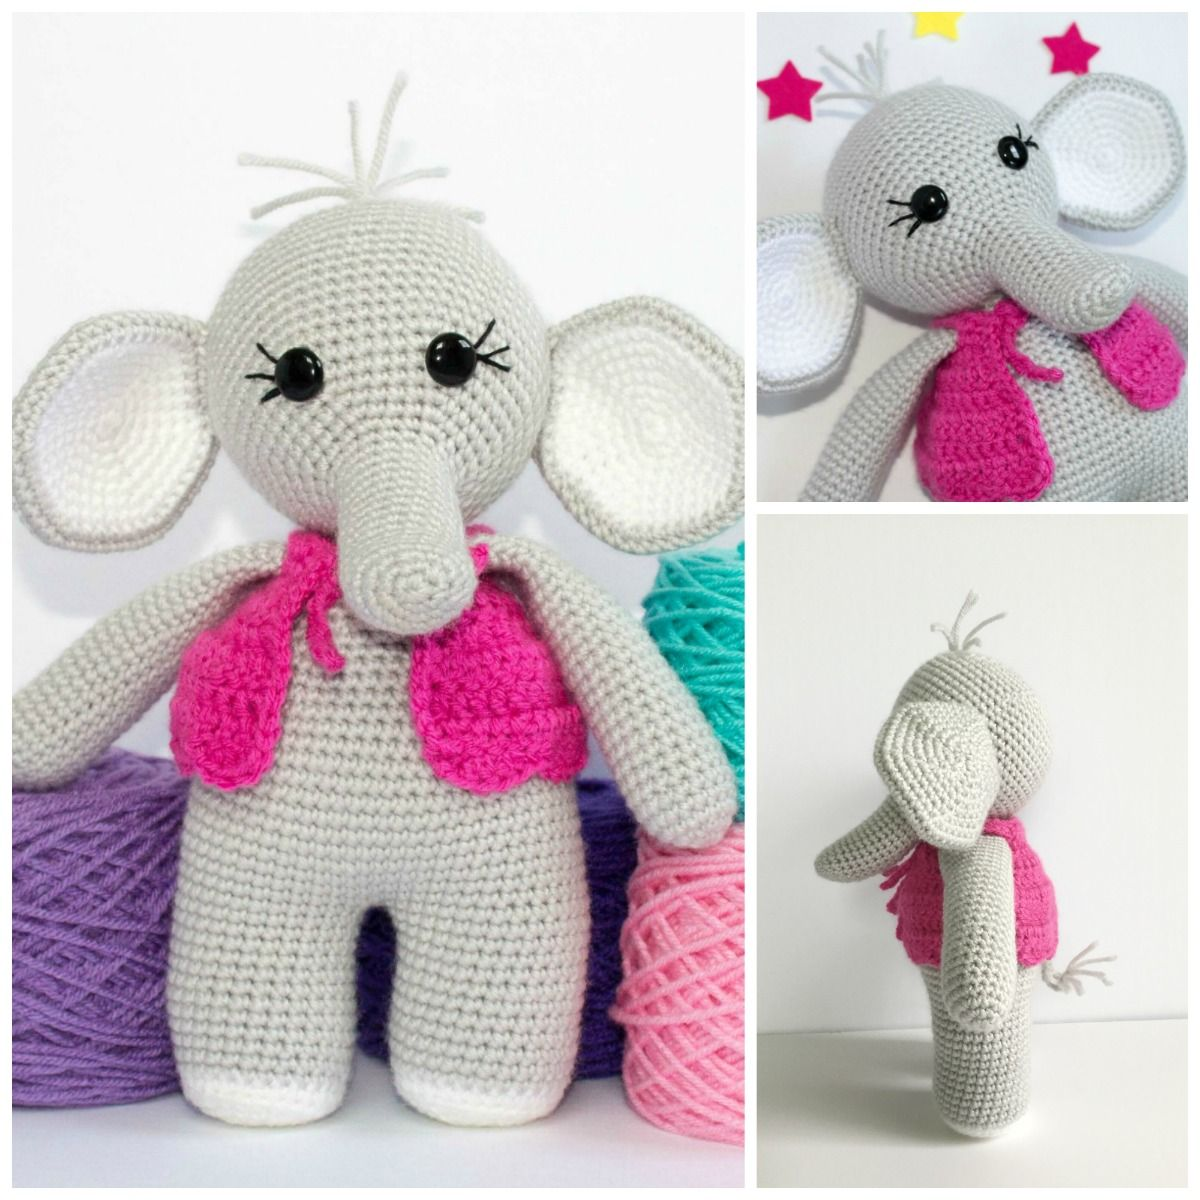 This free elephant crochet pattern has been a long work in progress ...